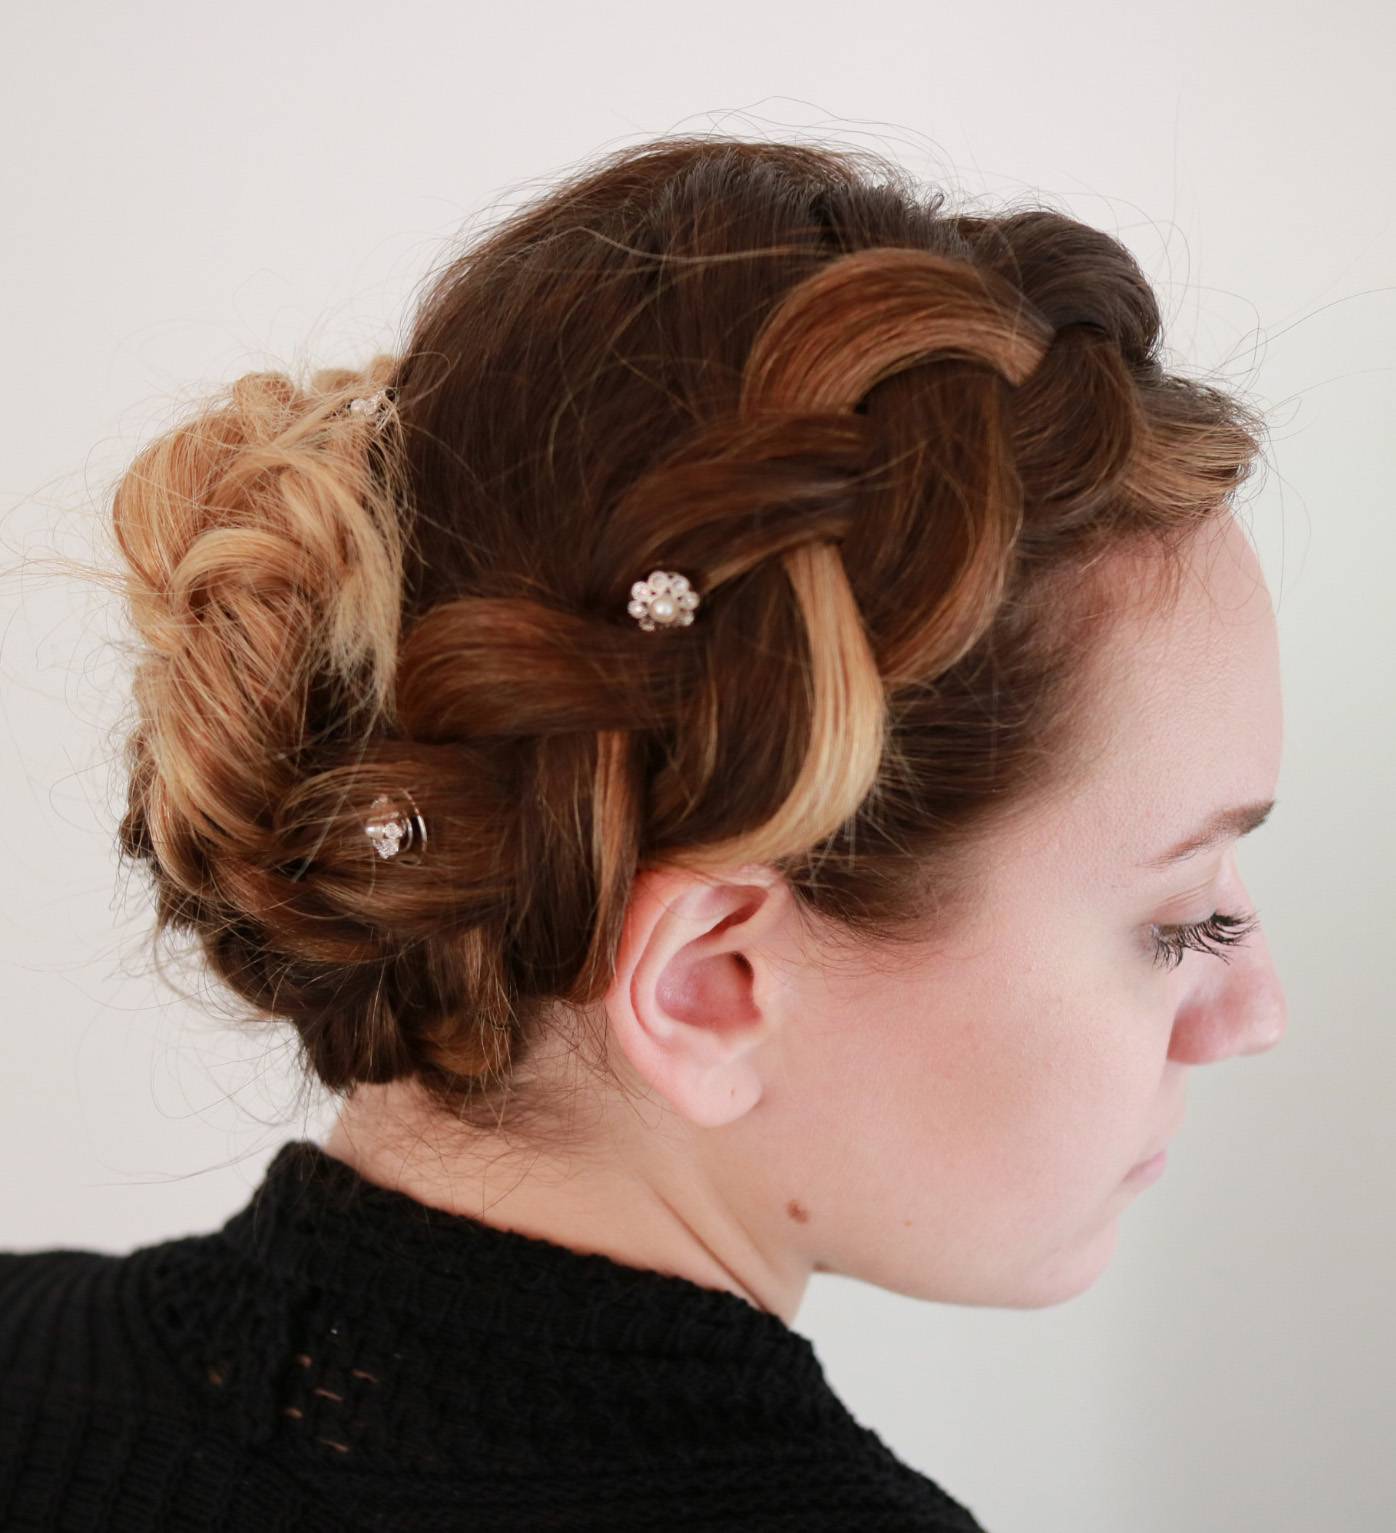 Dress this dutch braid up or down for a company holiday party or hanging at home decorating the Christmas tree | Styled by Emily